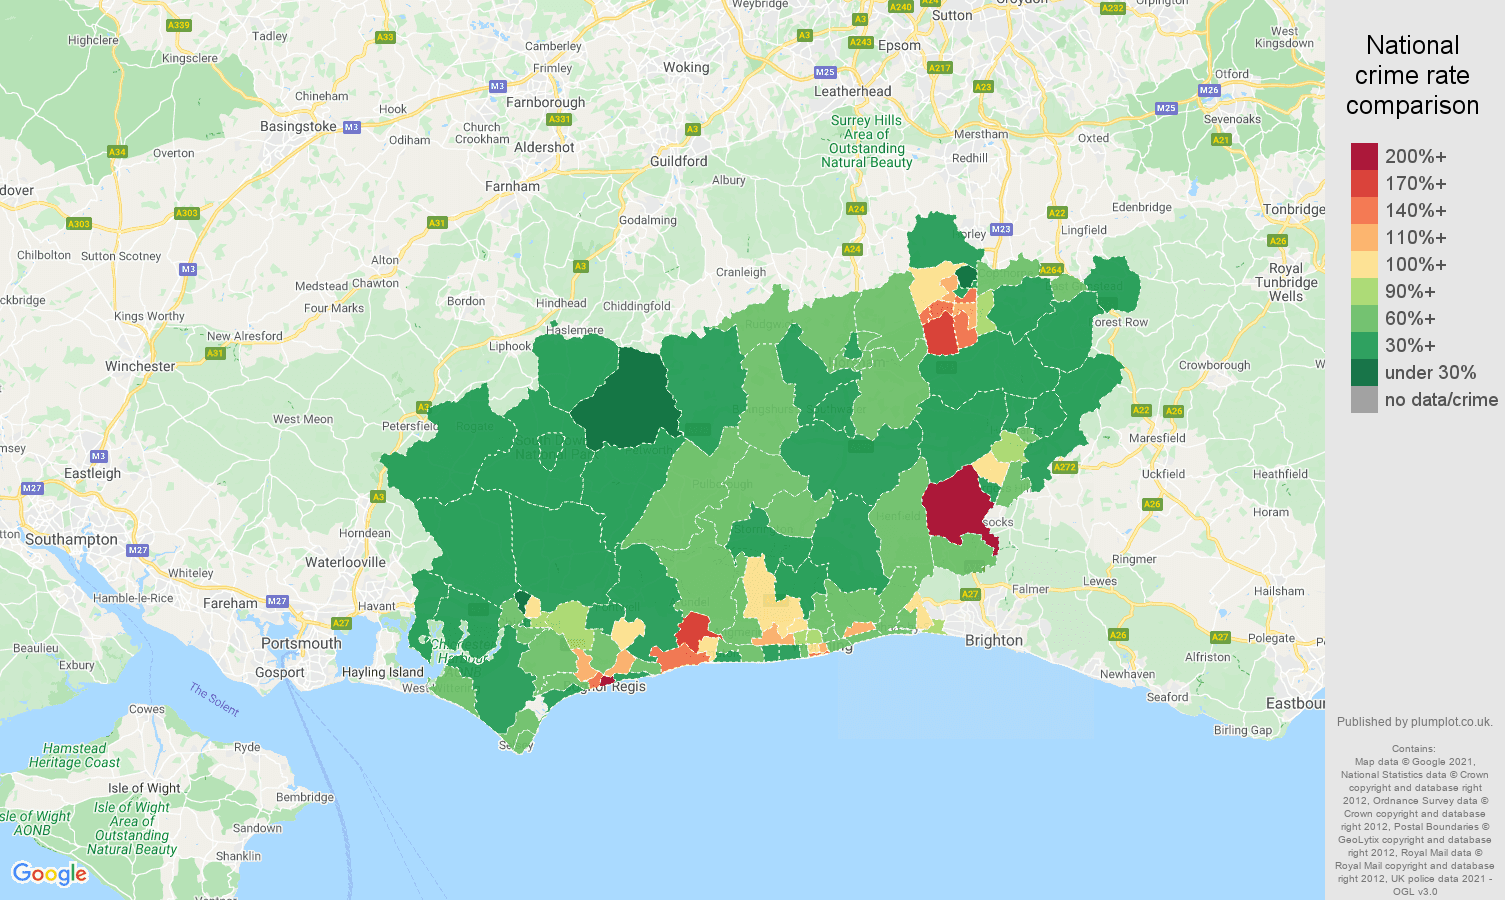 West Sussex violent crime rate comparison map